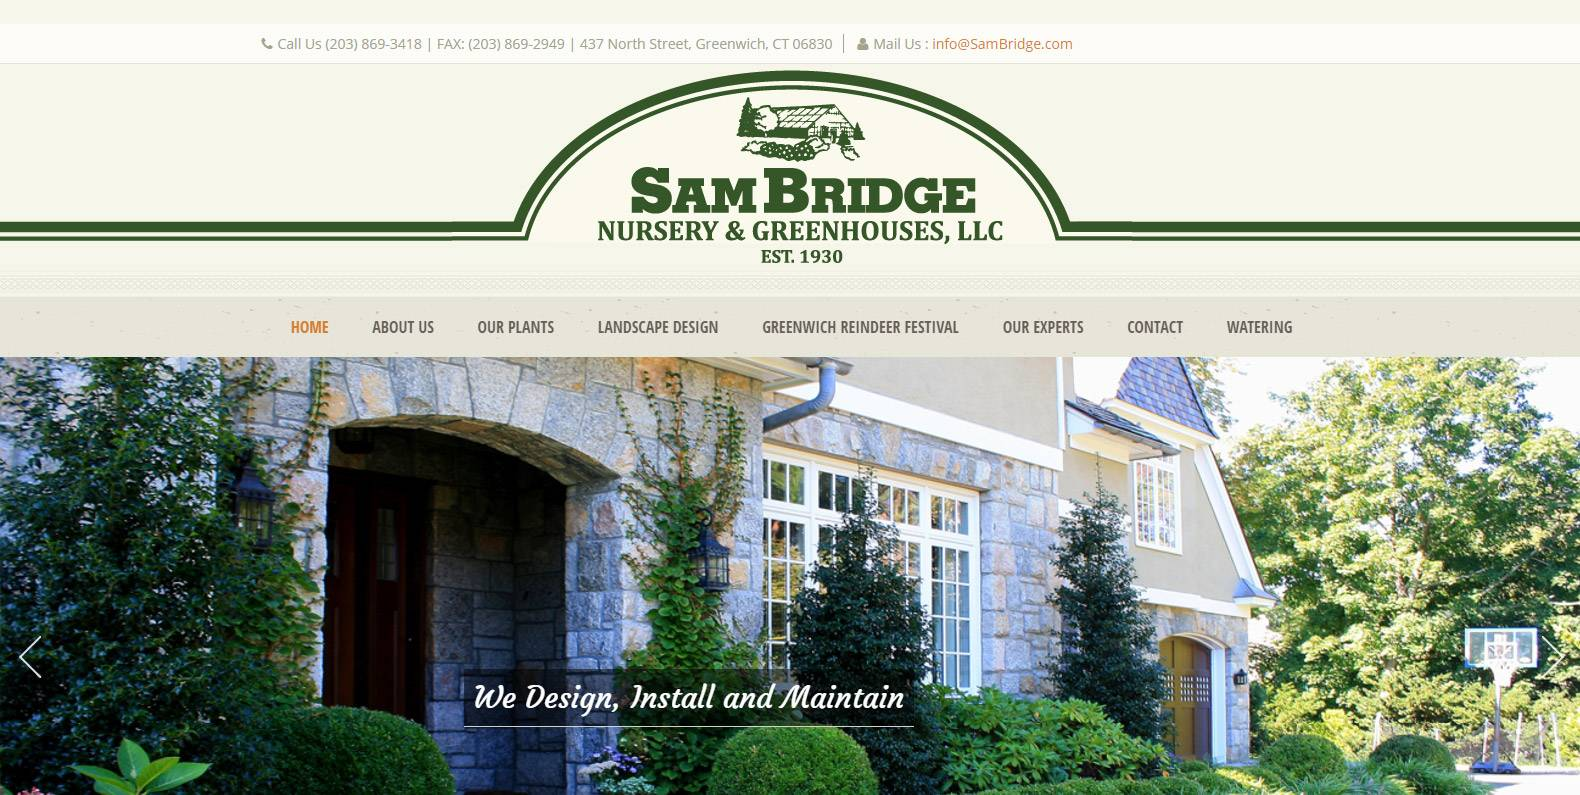 Sam-Bridge-Nursery-Greenhouses